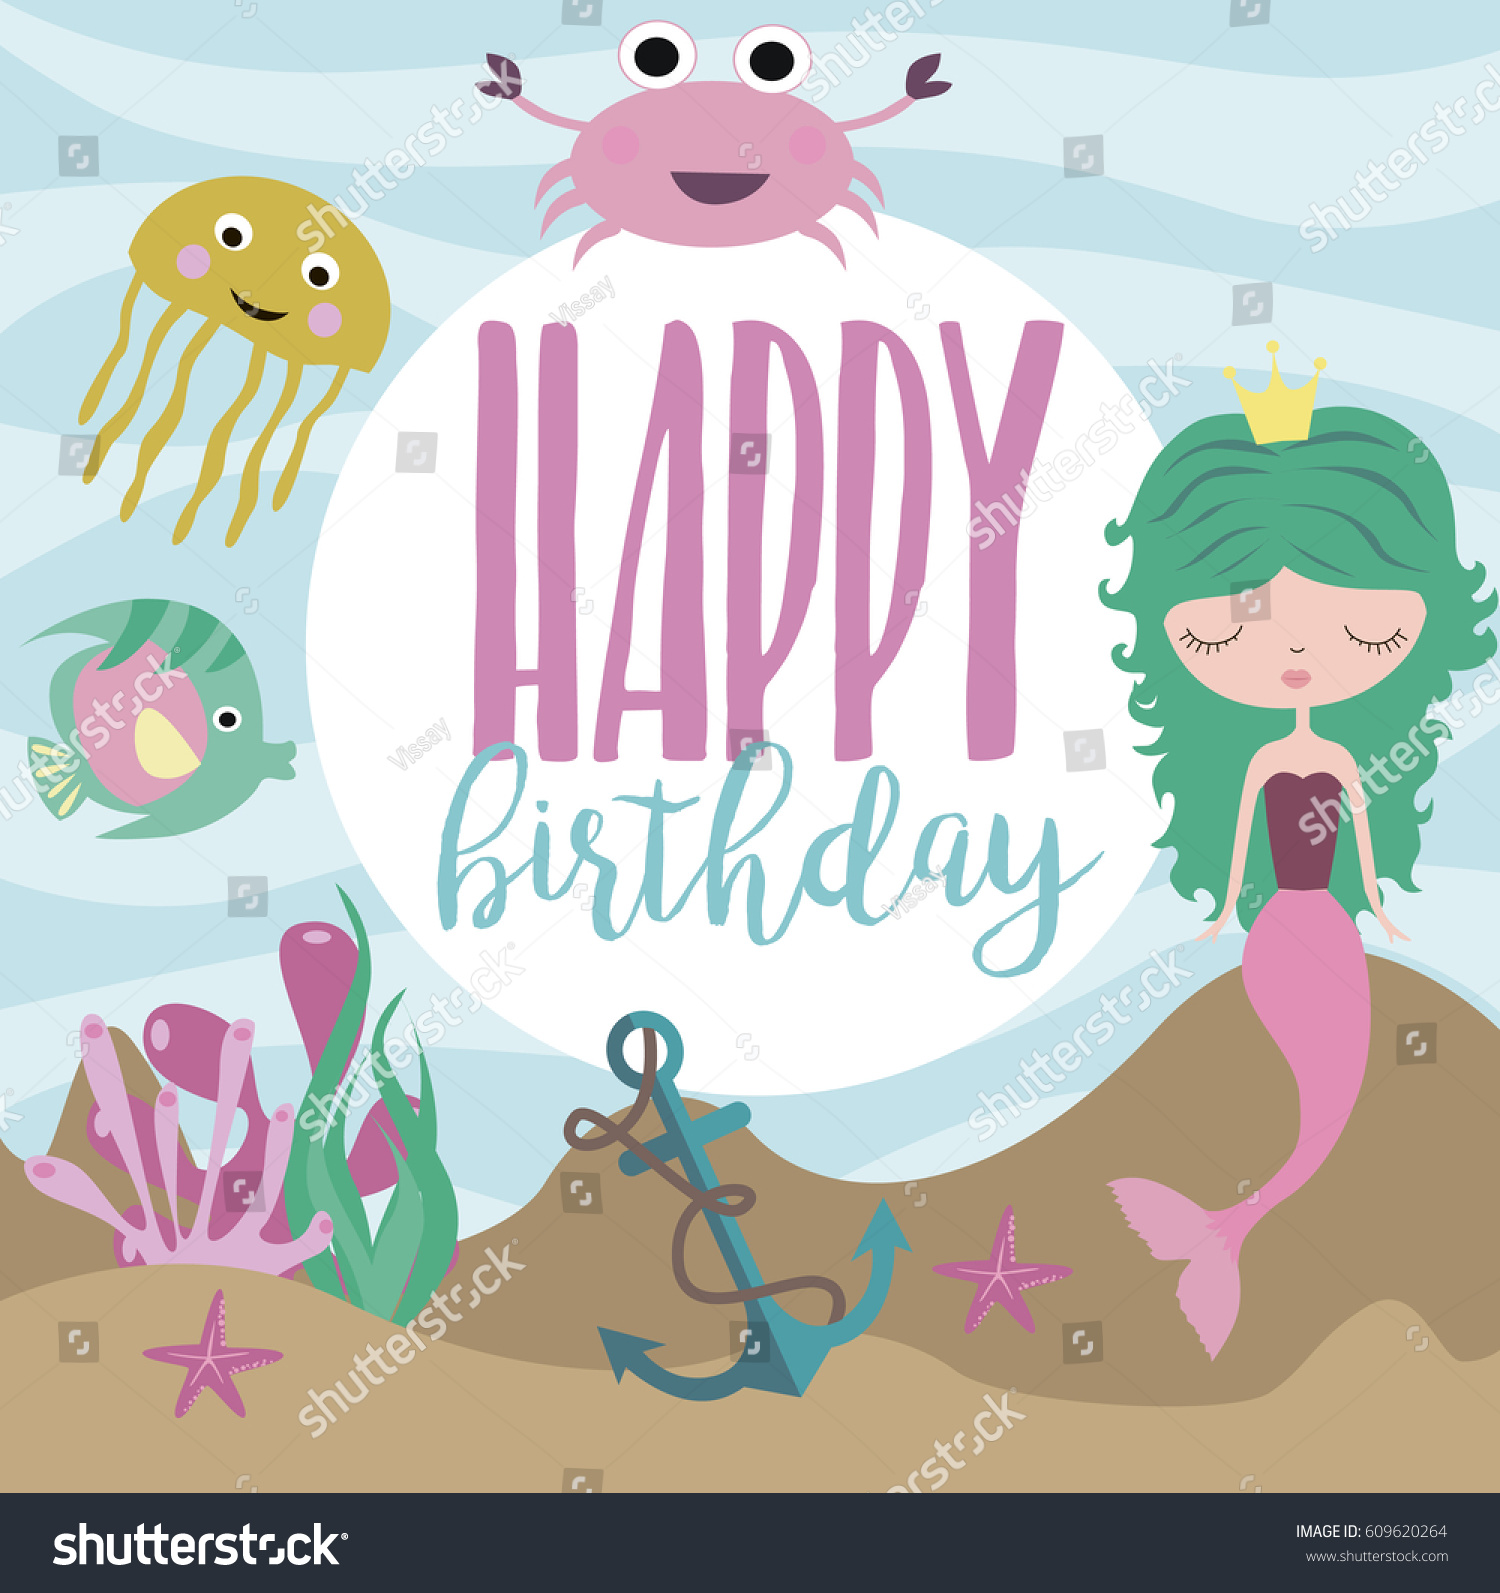 happy birthday greeting invitation card template のベクター画像素材